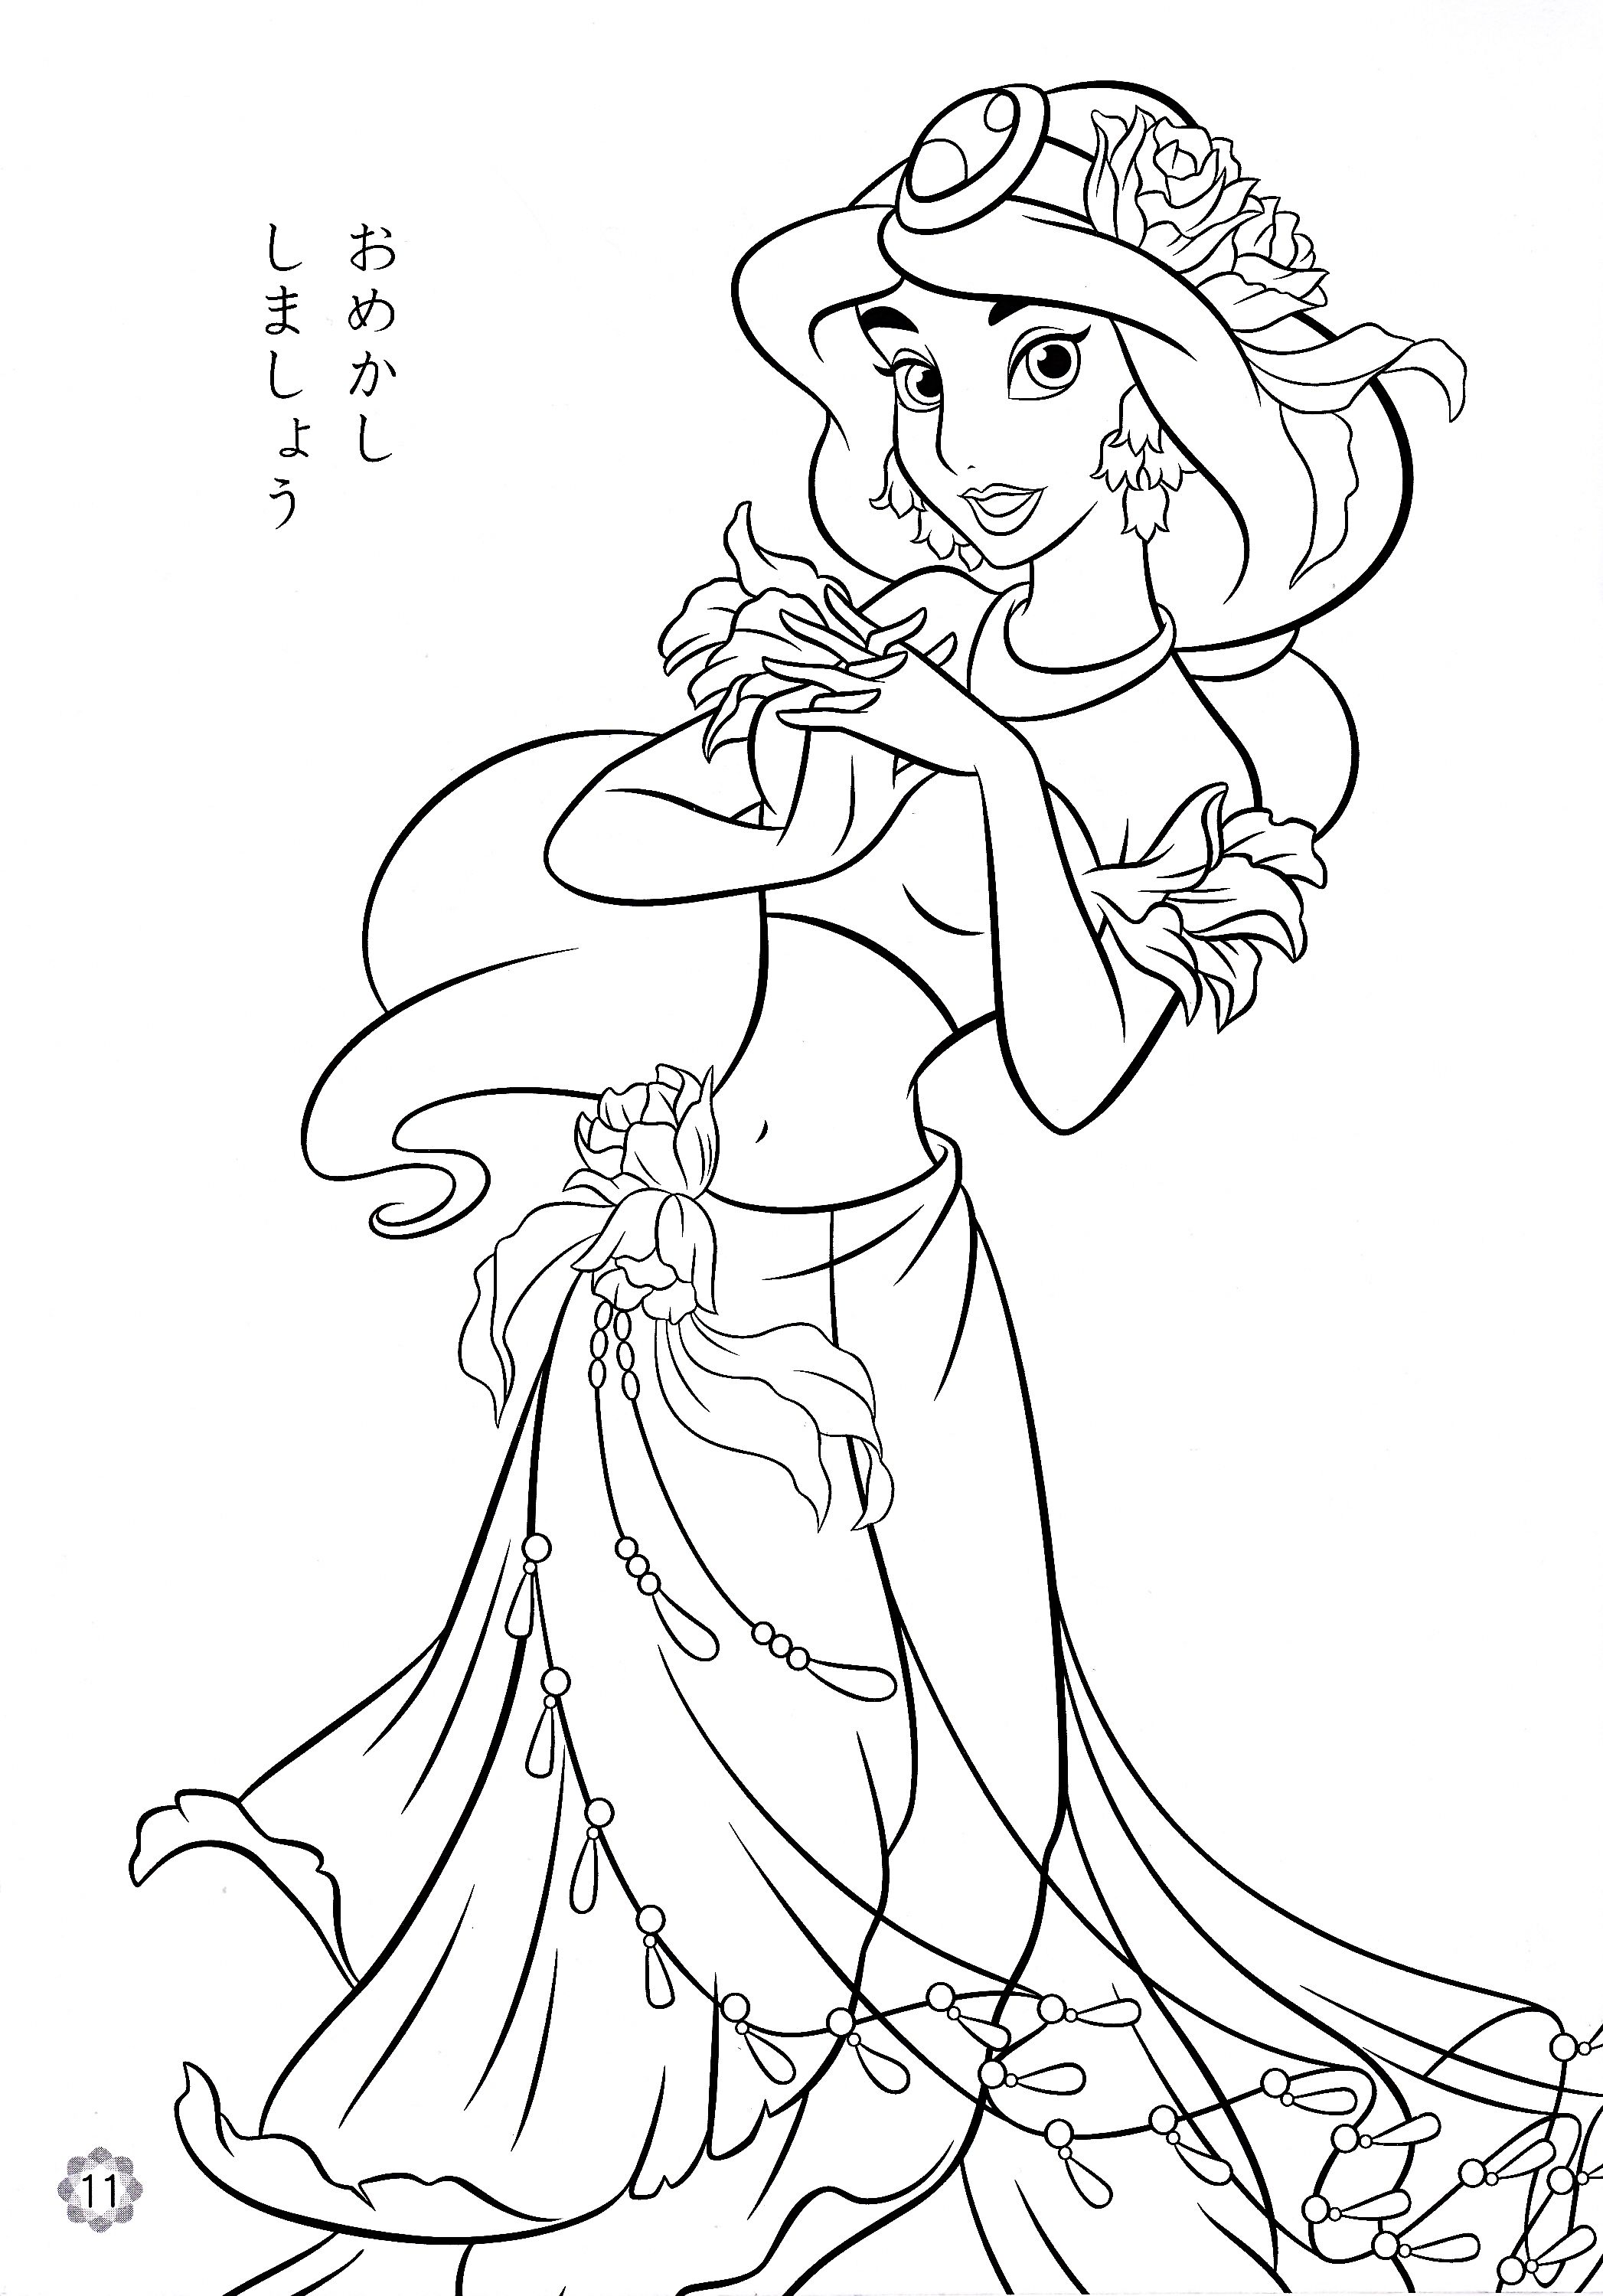 Jasmine Disney Princess Coloring Pages Mermaid Coloring Pages Disney Coloring Pages